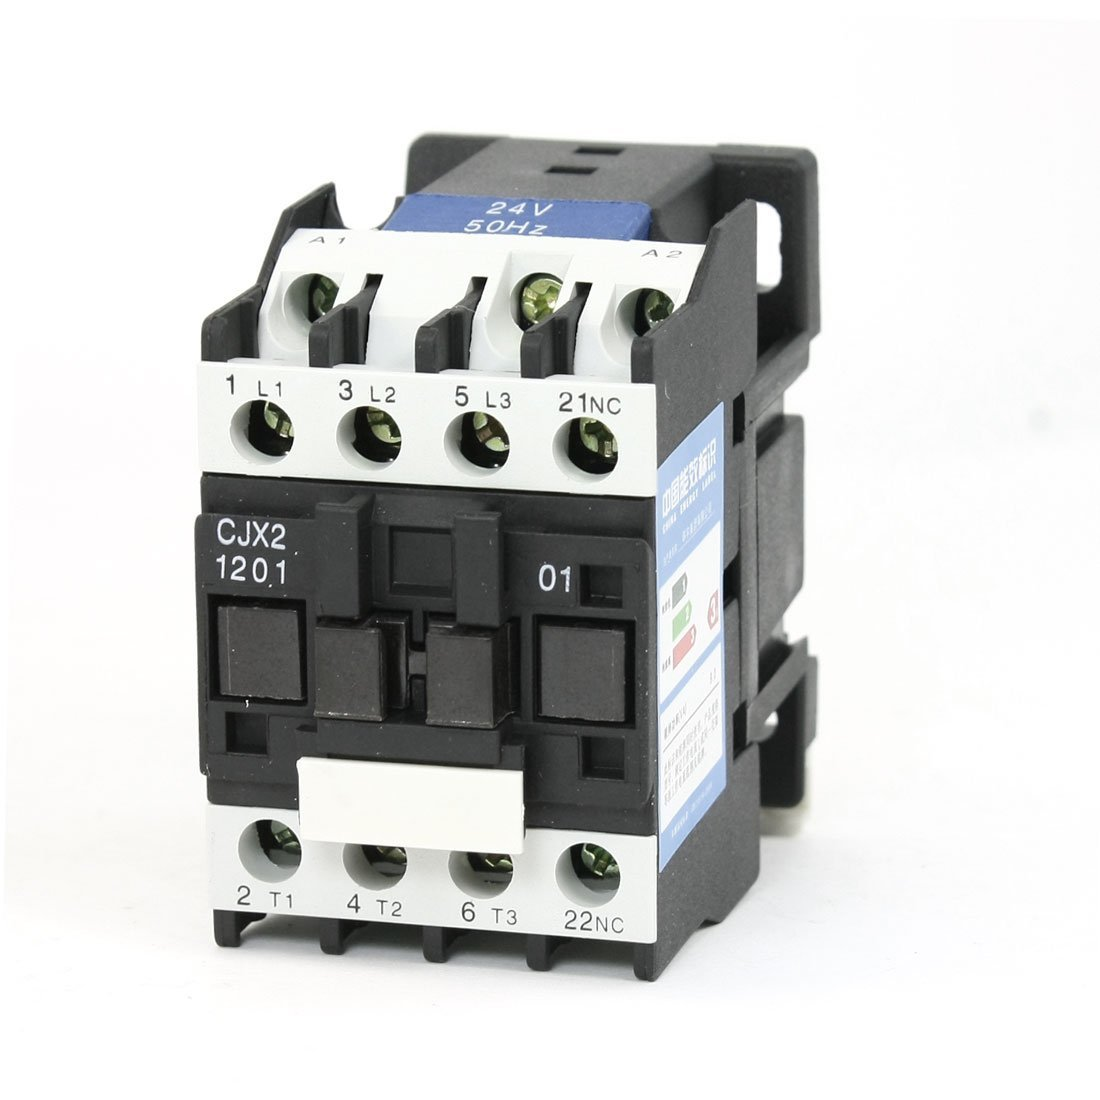 uxcell CJX2-1201 AC Contactor 24V 50Hz Coil 12A 3-Phase 3-Pole 1NC